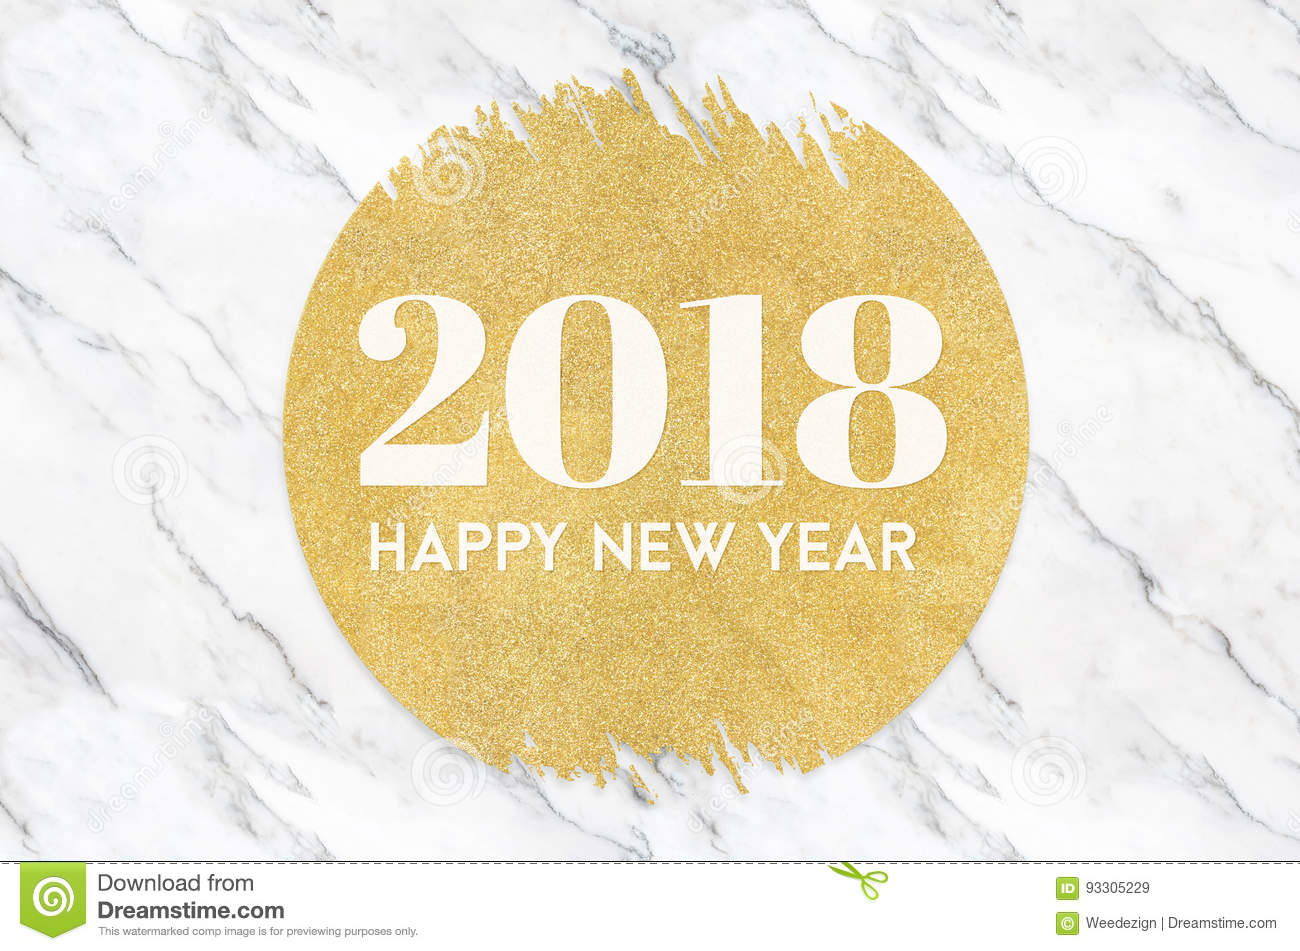 Happy new year 2018 number on gold circle glitter on white marbl